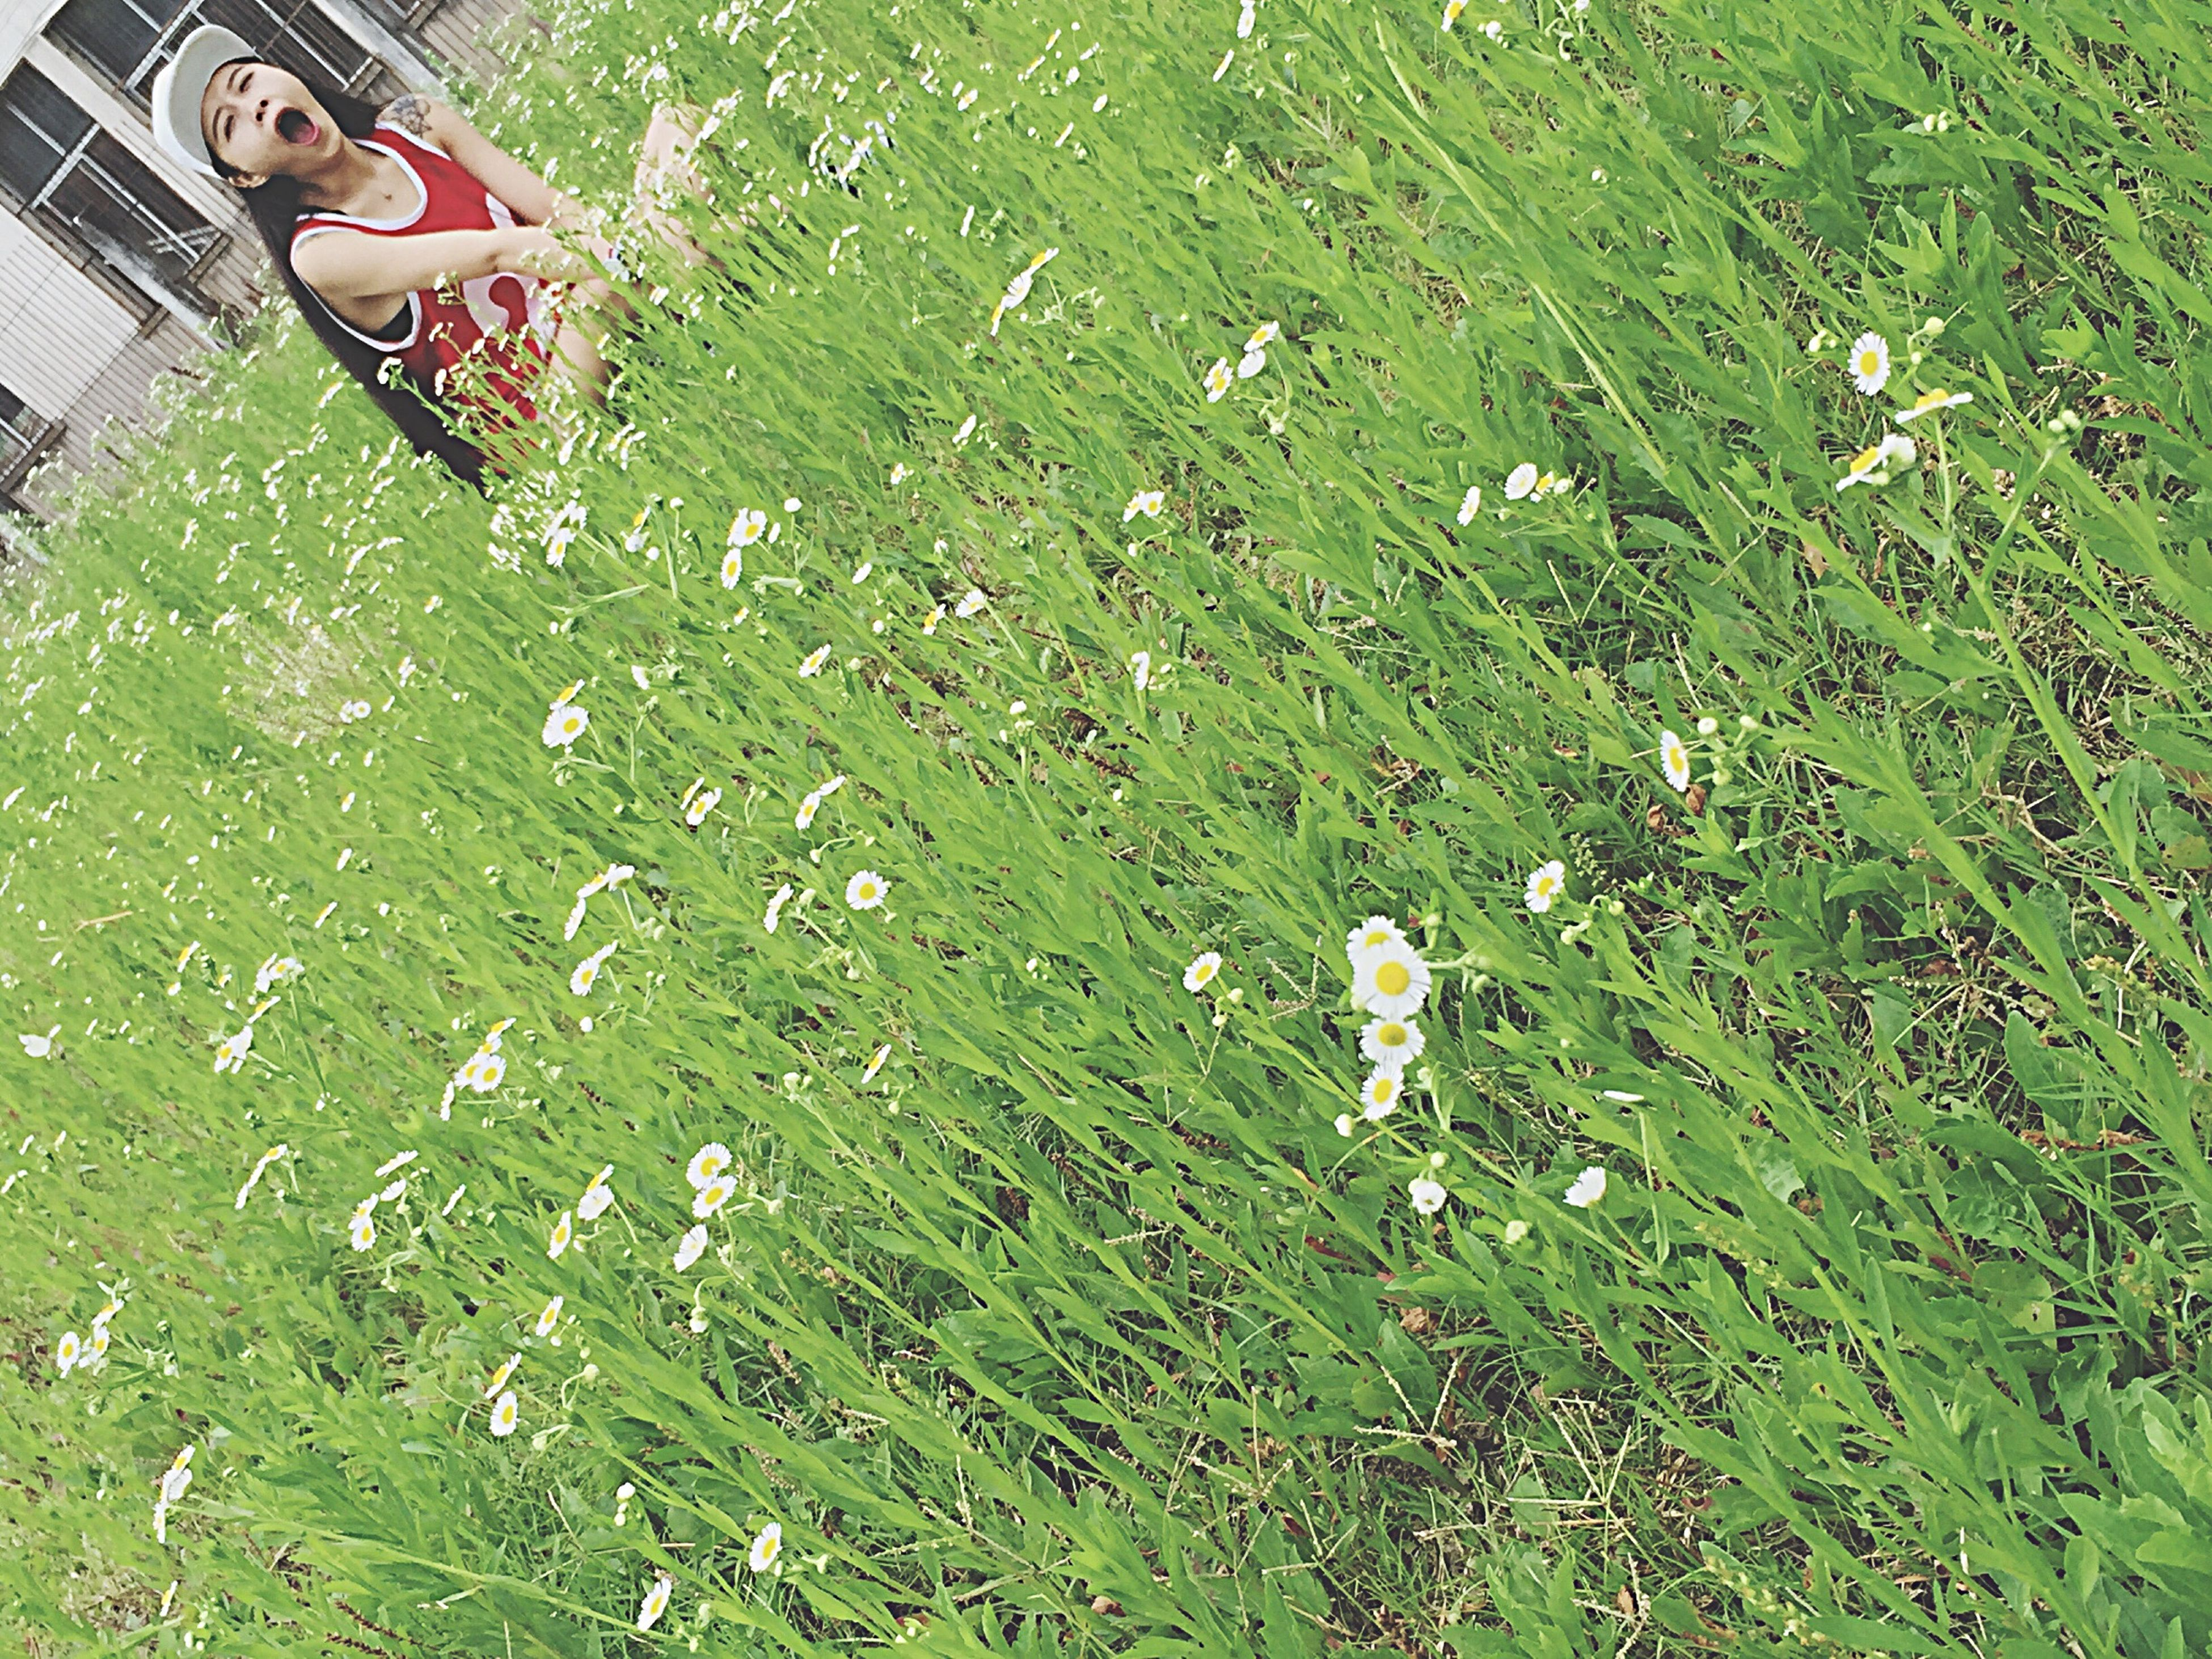 grass, high angle view, plant, green color, growth, field, grassy, front or back yard, day, outdoors, nature, leaf, sunlight, flower, lawn, park - man made space, no people, freshness, beauty in nature, relaxation